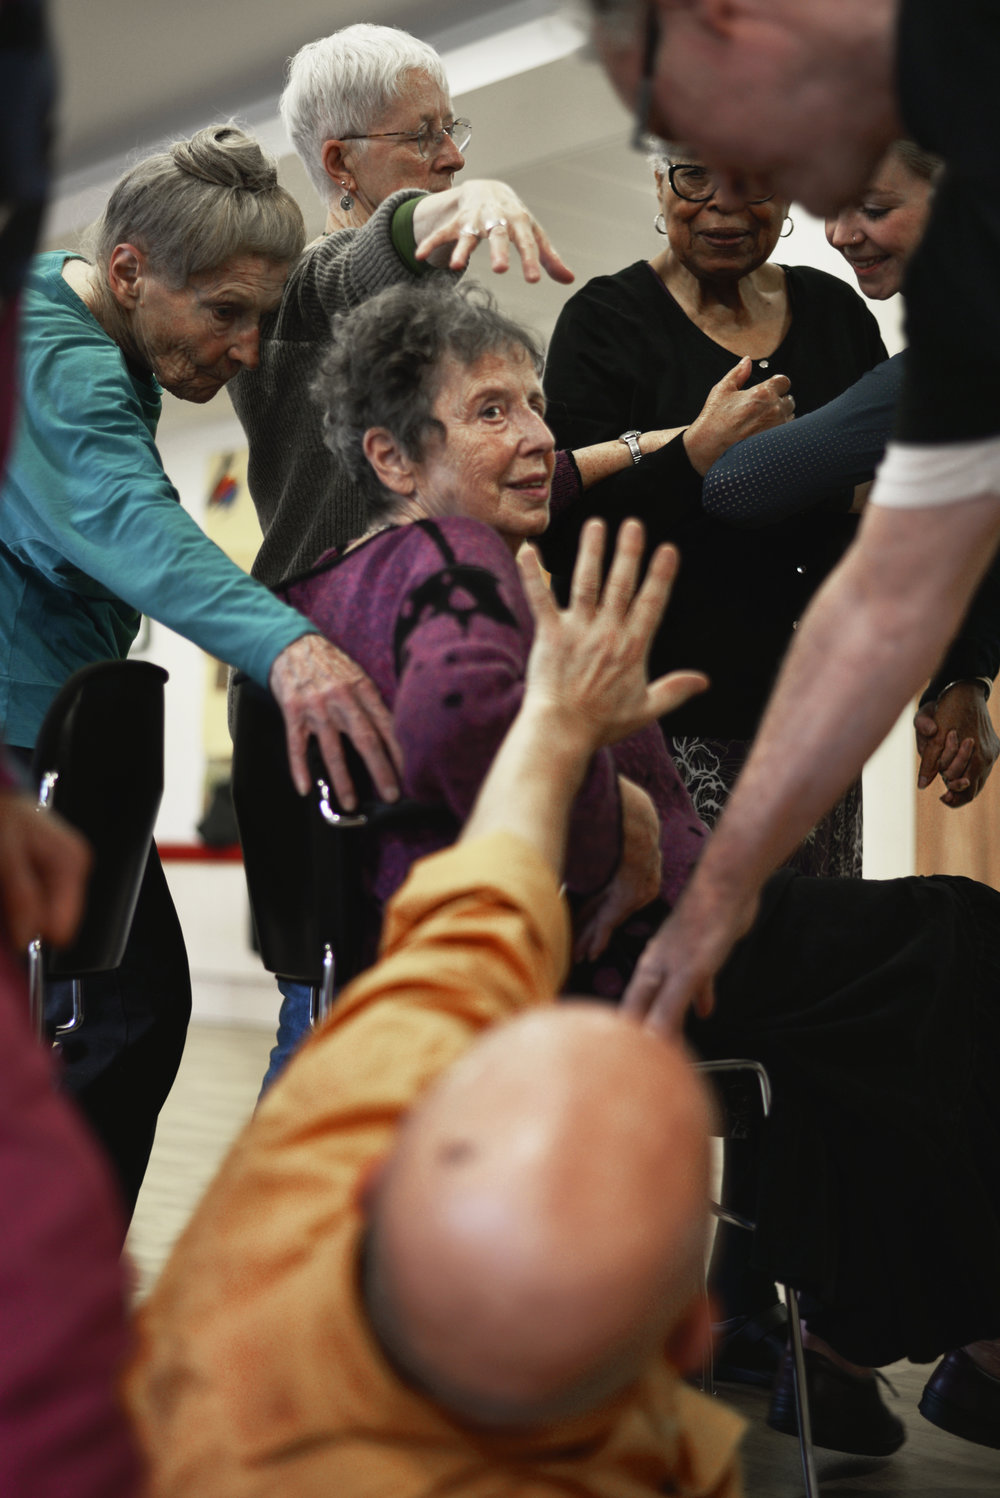 Dancing with Parkinson's at St. Joseph's Hospice